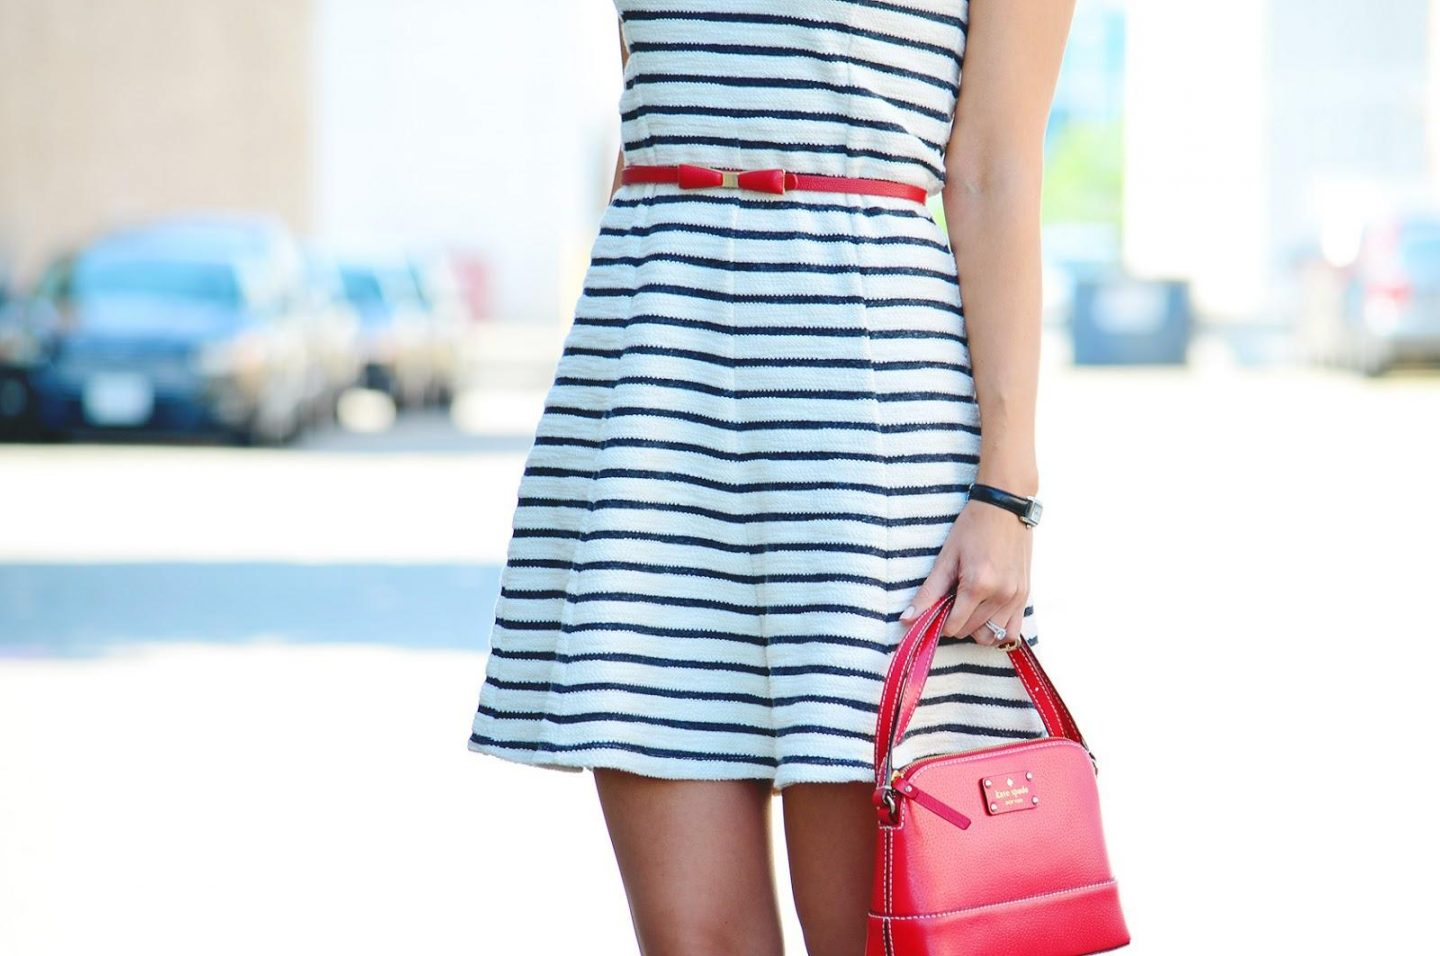 chan.ru imagesize:1440x956 Style, ootd, stripe dress, Striped dress, Joe Fresh, Kate Spade,